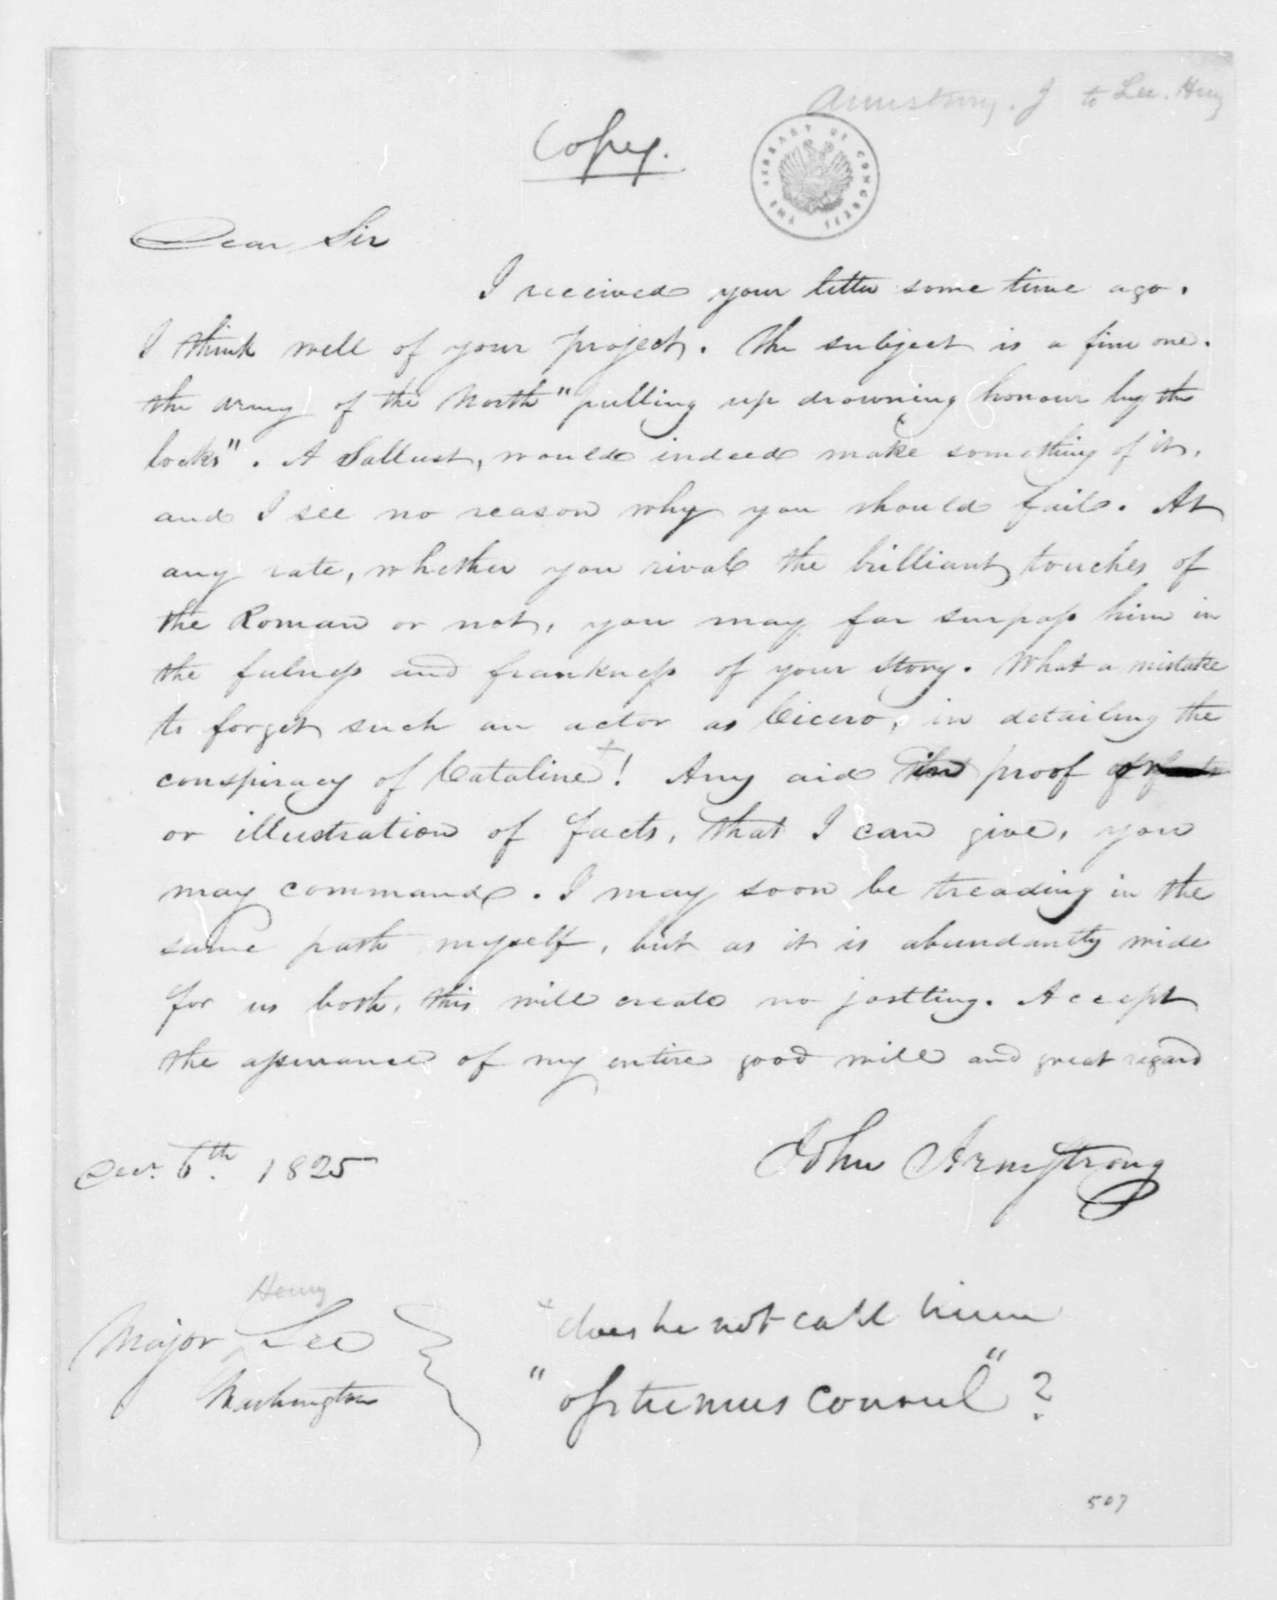 John Armstrong to Henry Lee, December 6, 1825.